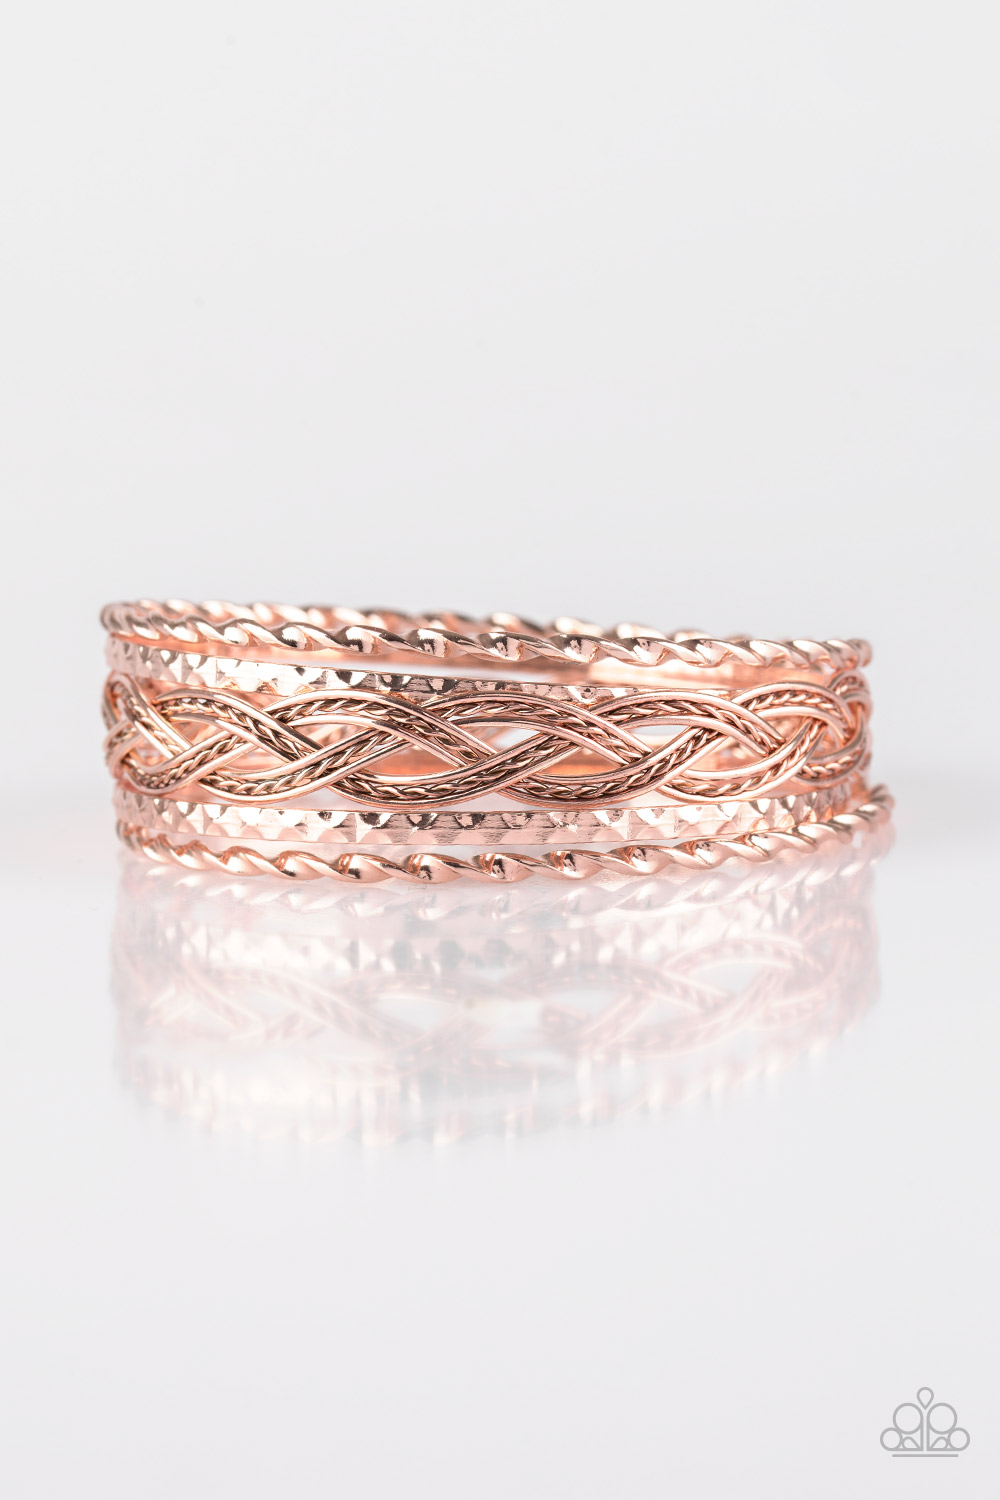 Rose Gold Bangle Set of 5 Bracelets $5 www.my-bling.com